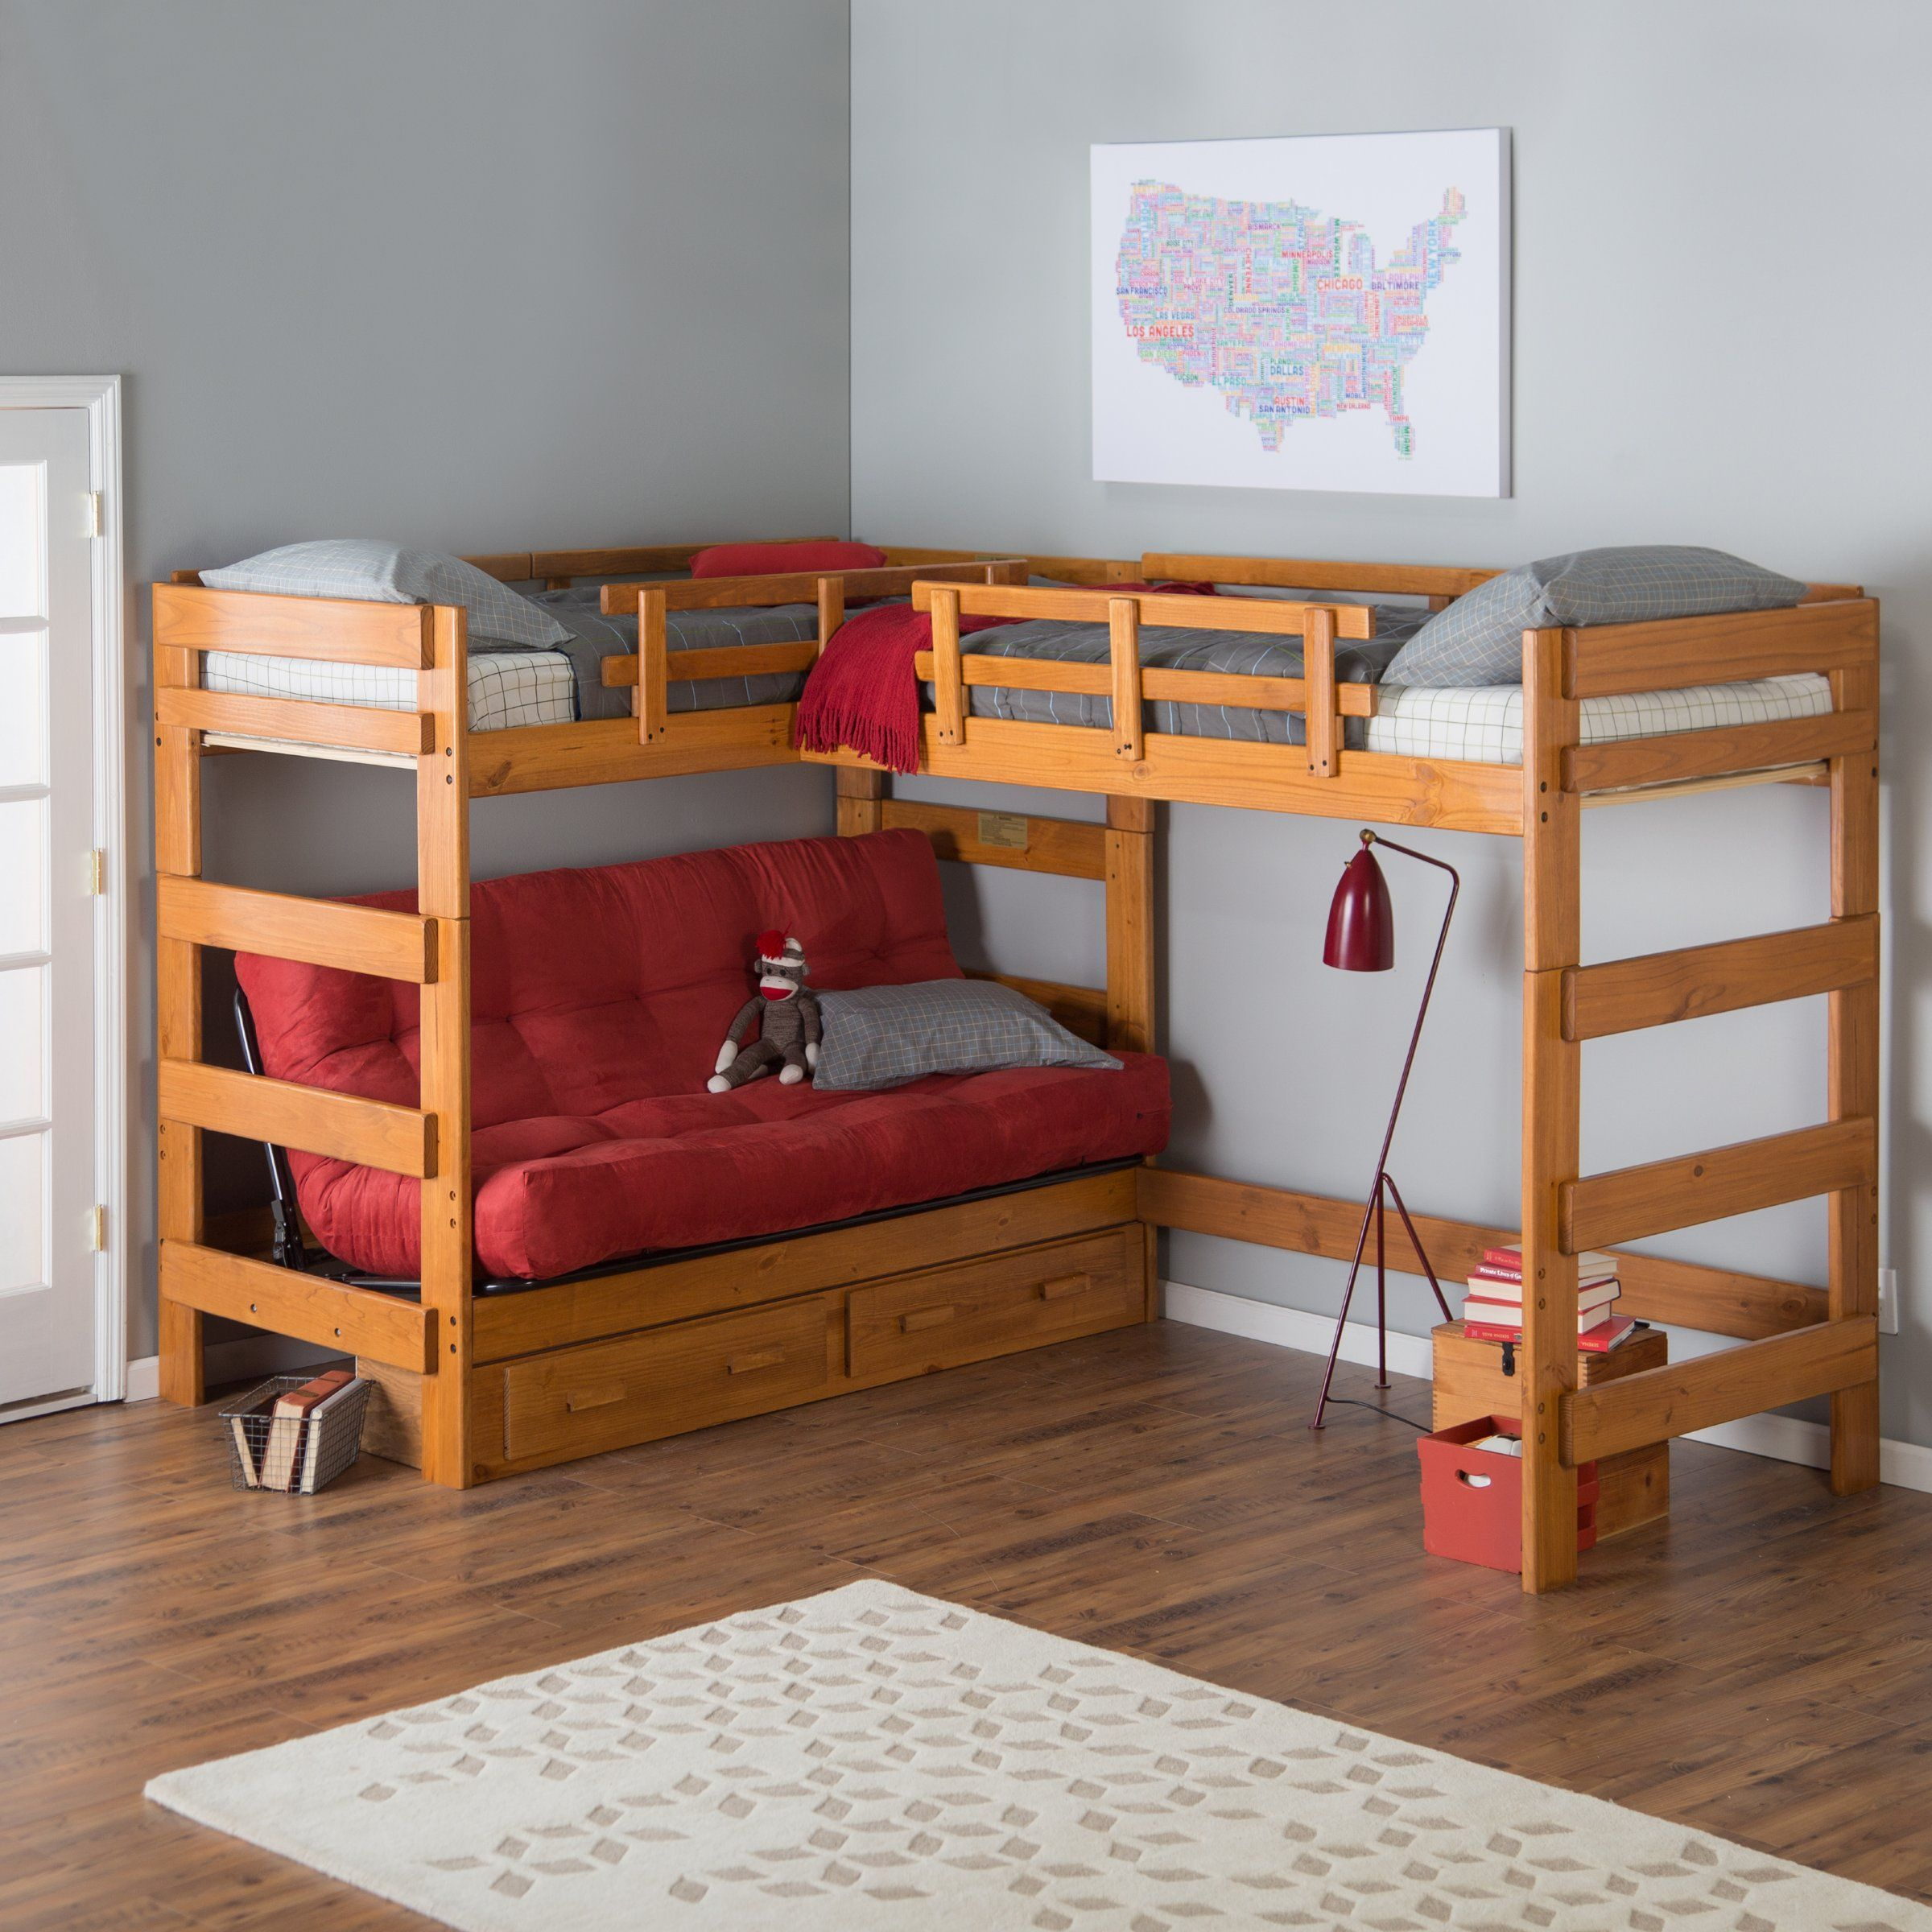 Woodcrest Heartland Futon Bunk Bed with Extra Loft Bed Kids